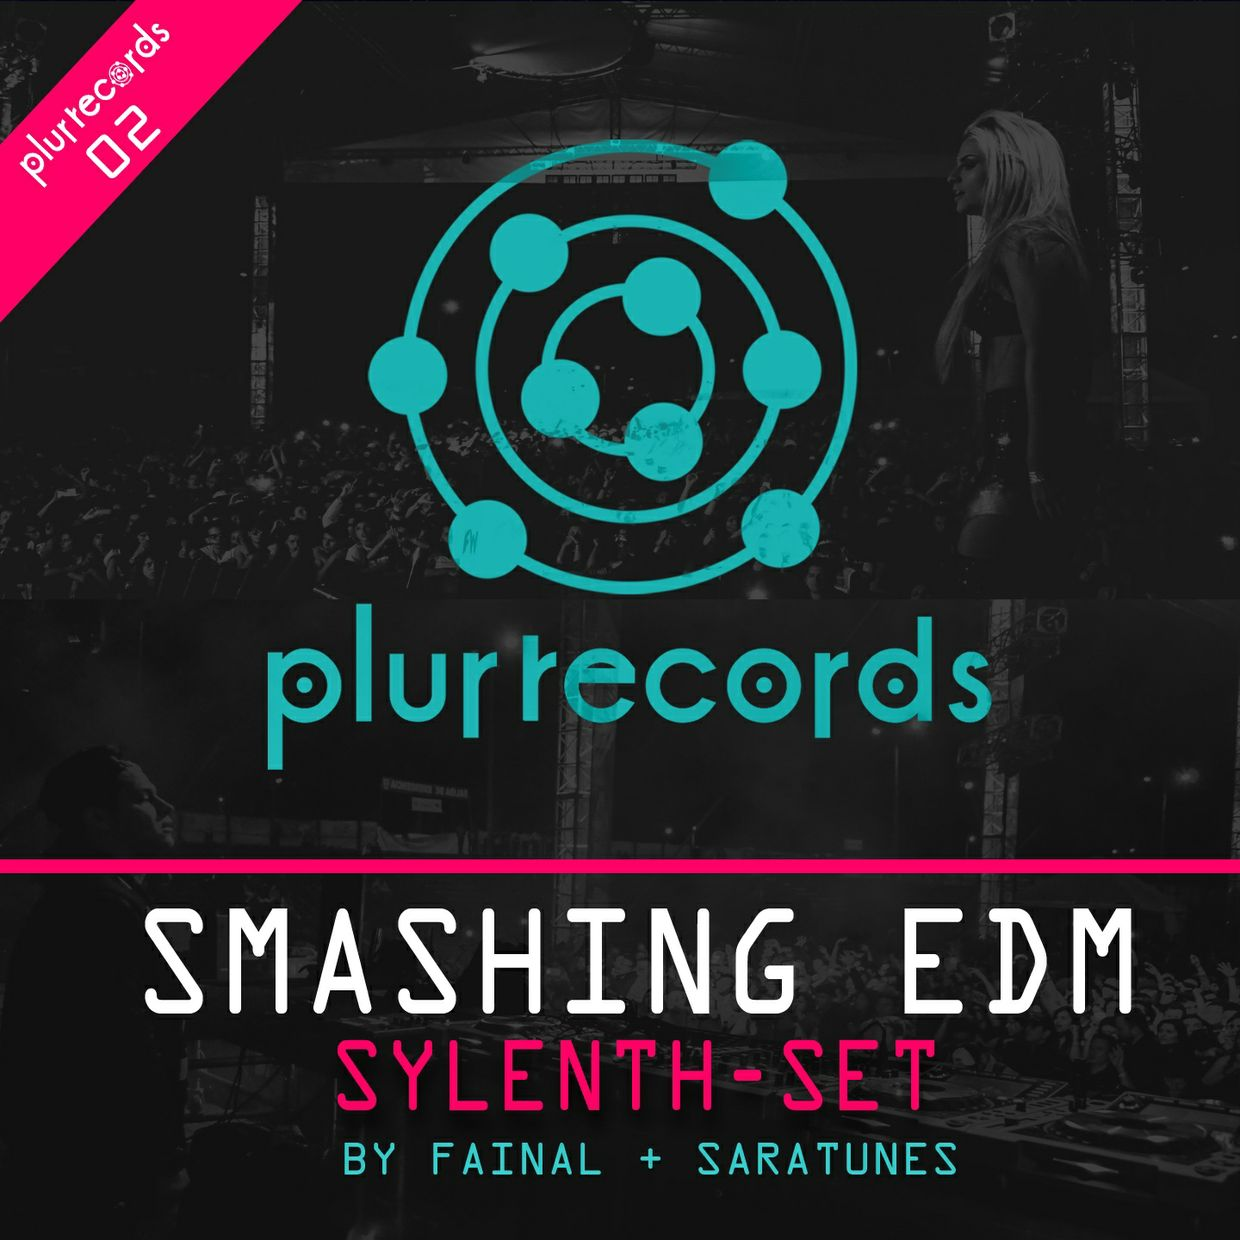 SMASHING EDM SYLENTH-SET BY FAINAL + SARATUNES